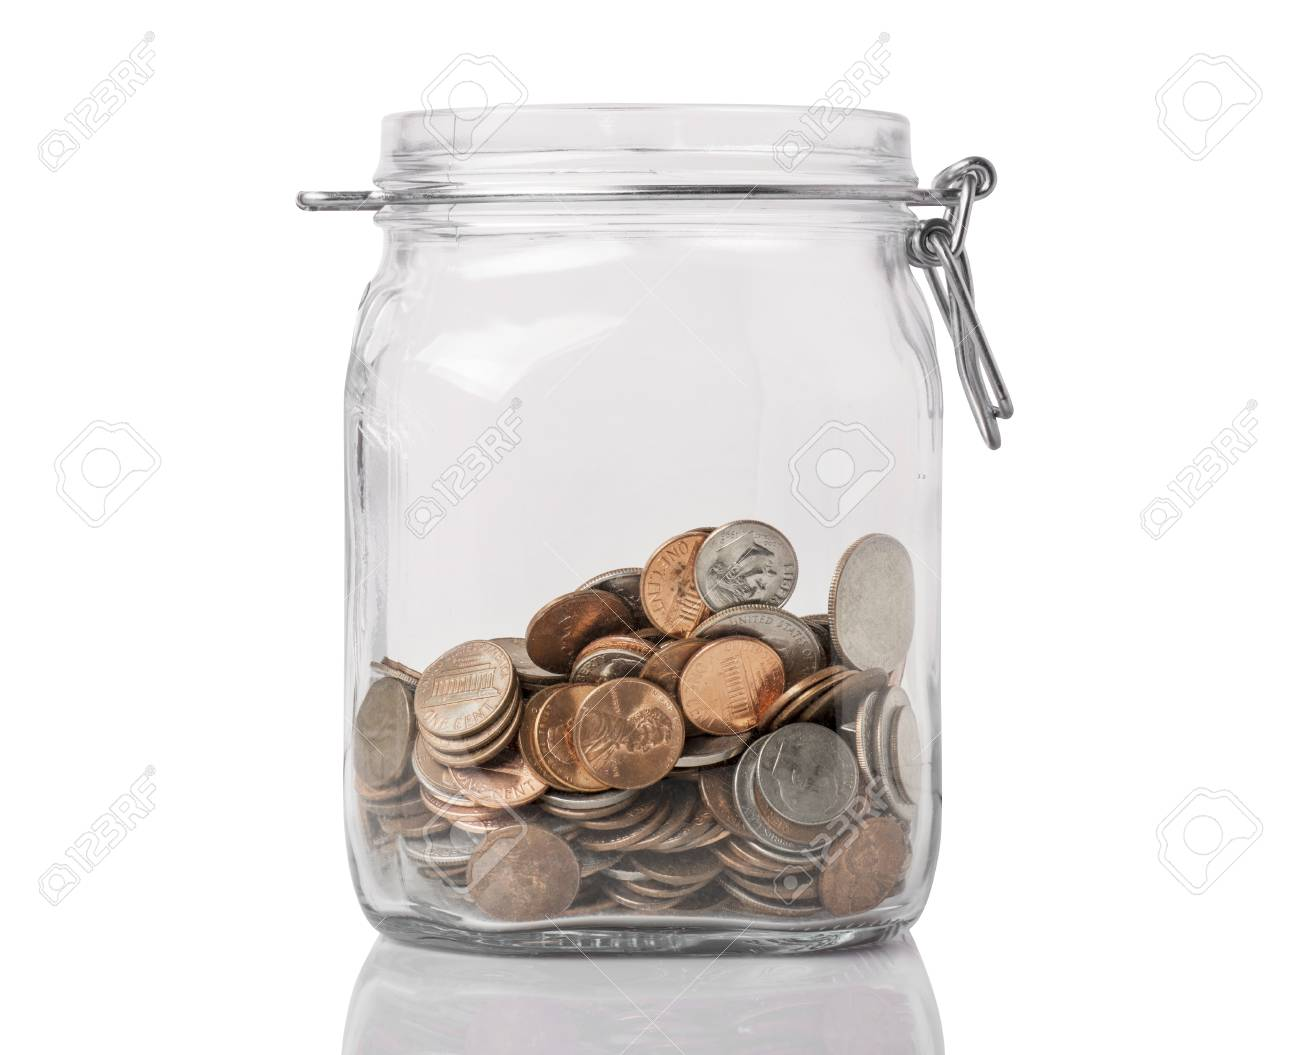 A Jar With American Change Used For Savings Or Tips, Isolated ...